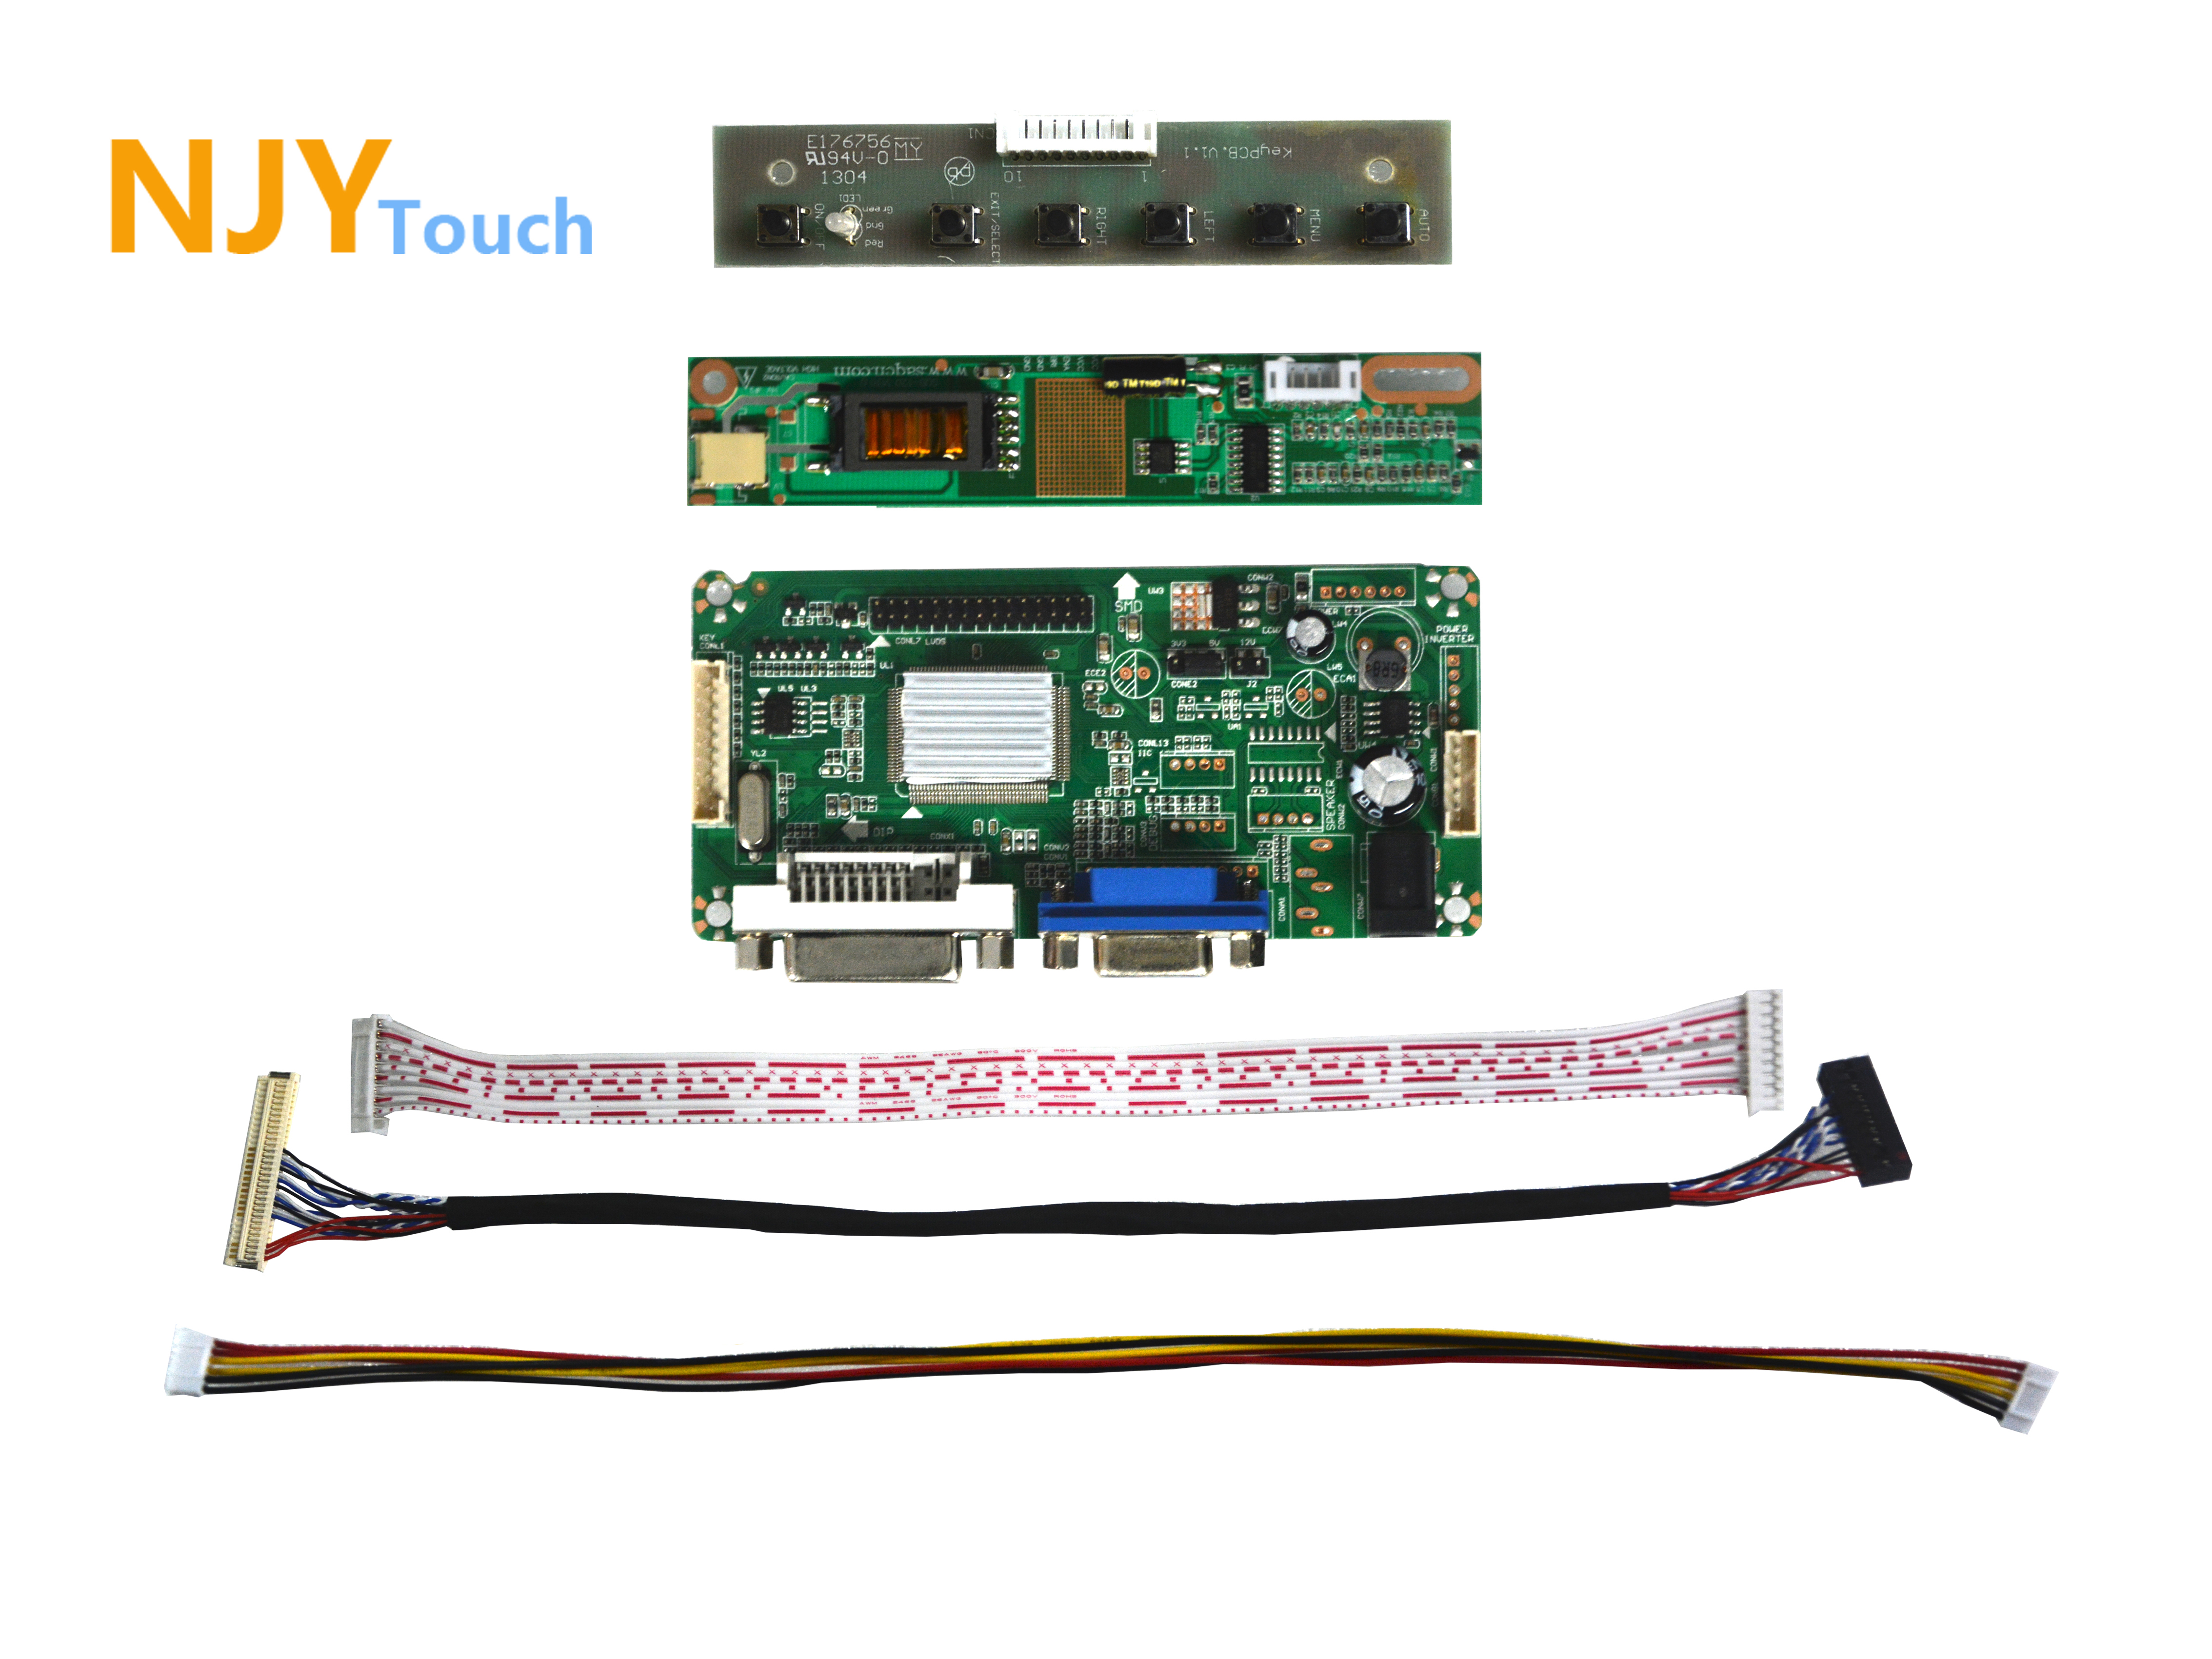 NJYTouch LM.R61 DVI VGA LCD Controller Driver Board For 15.6inch LP156WH1-TLA1 LTN156AT01 1366x768 LCD Screen